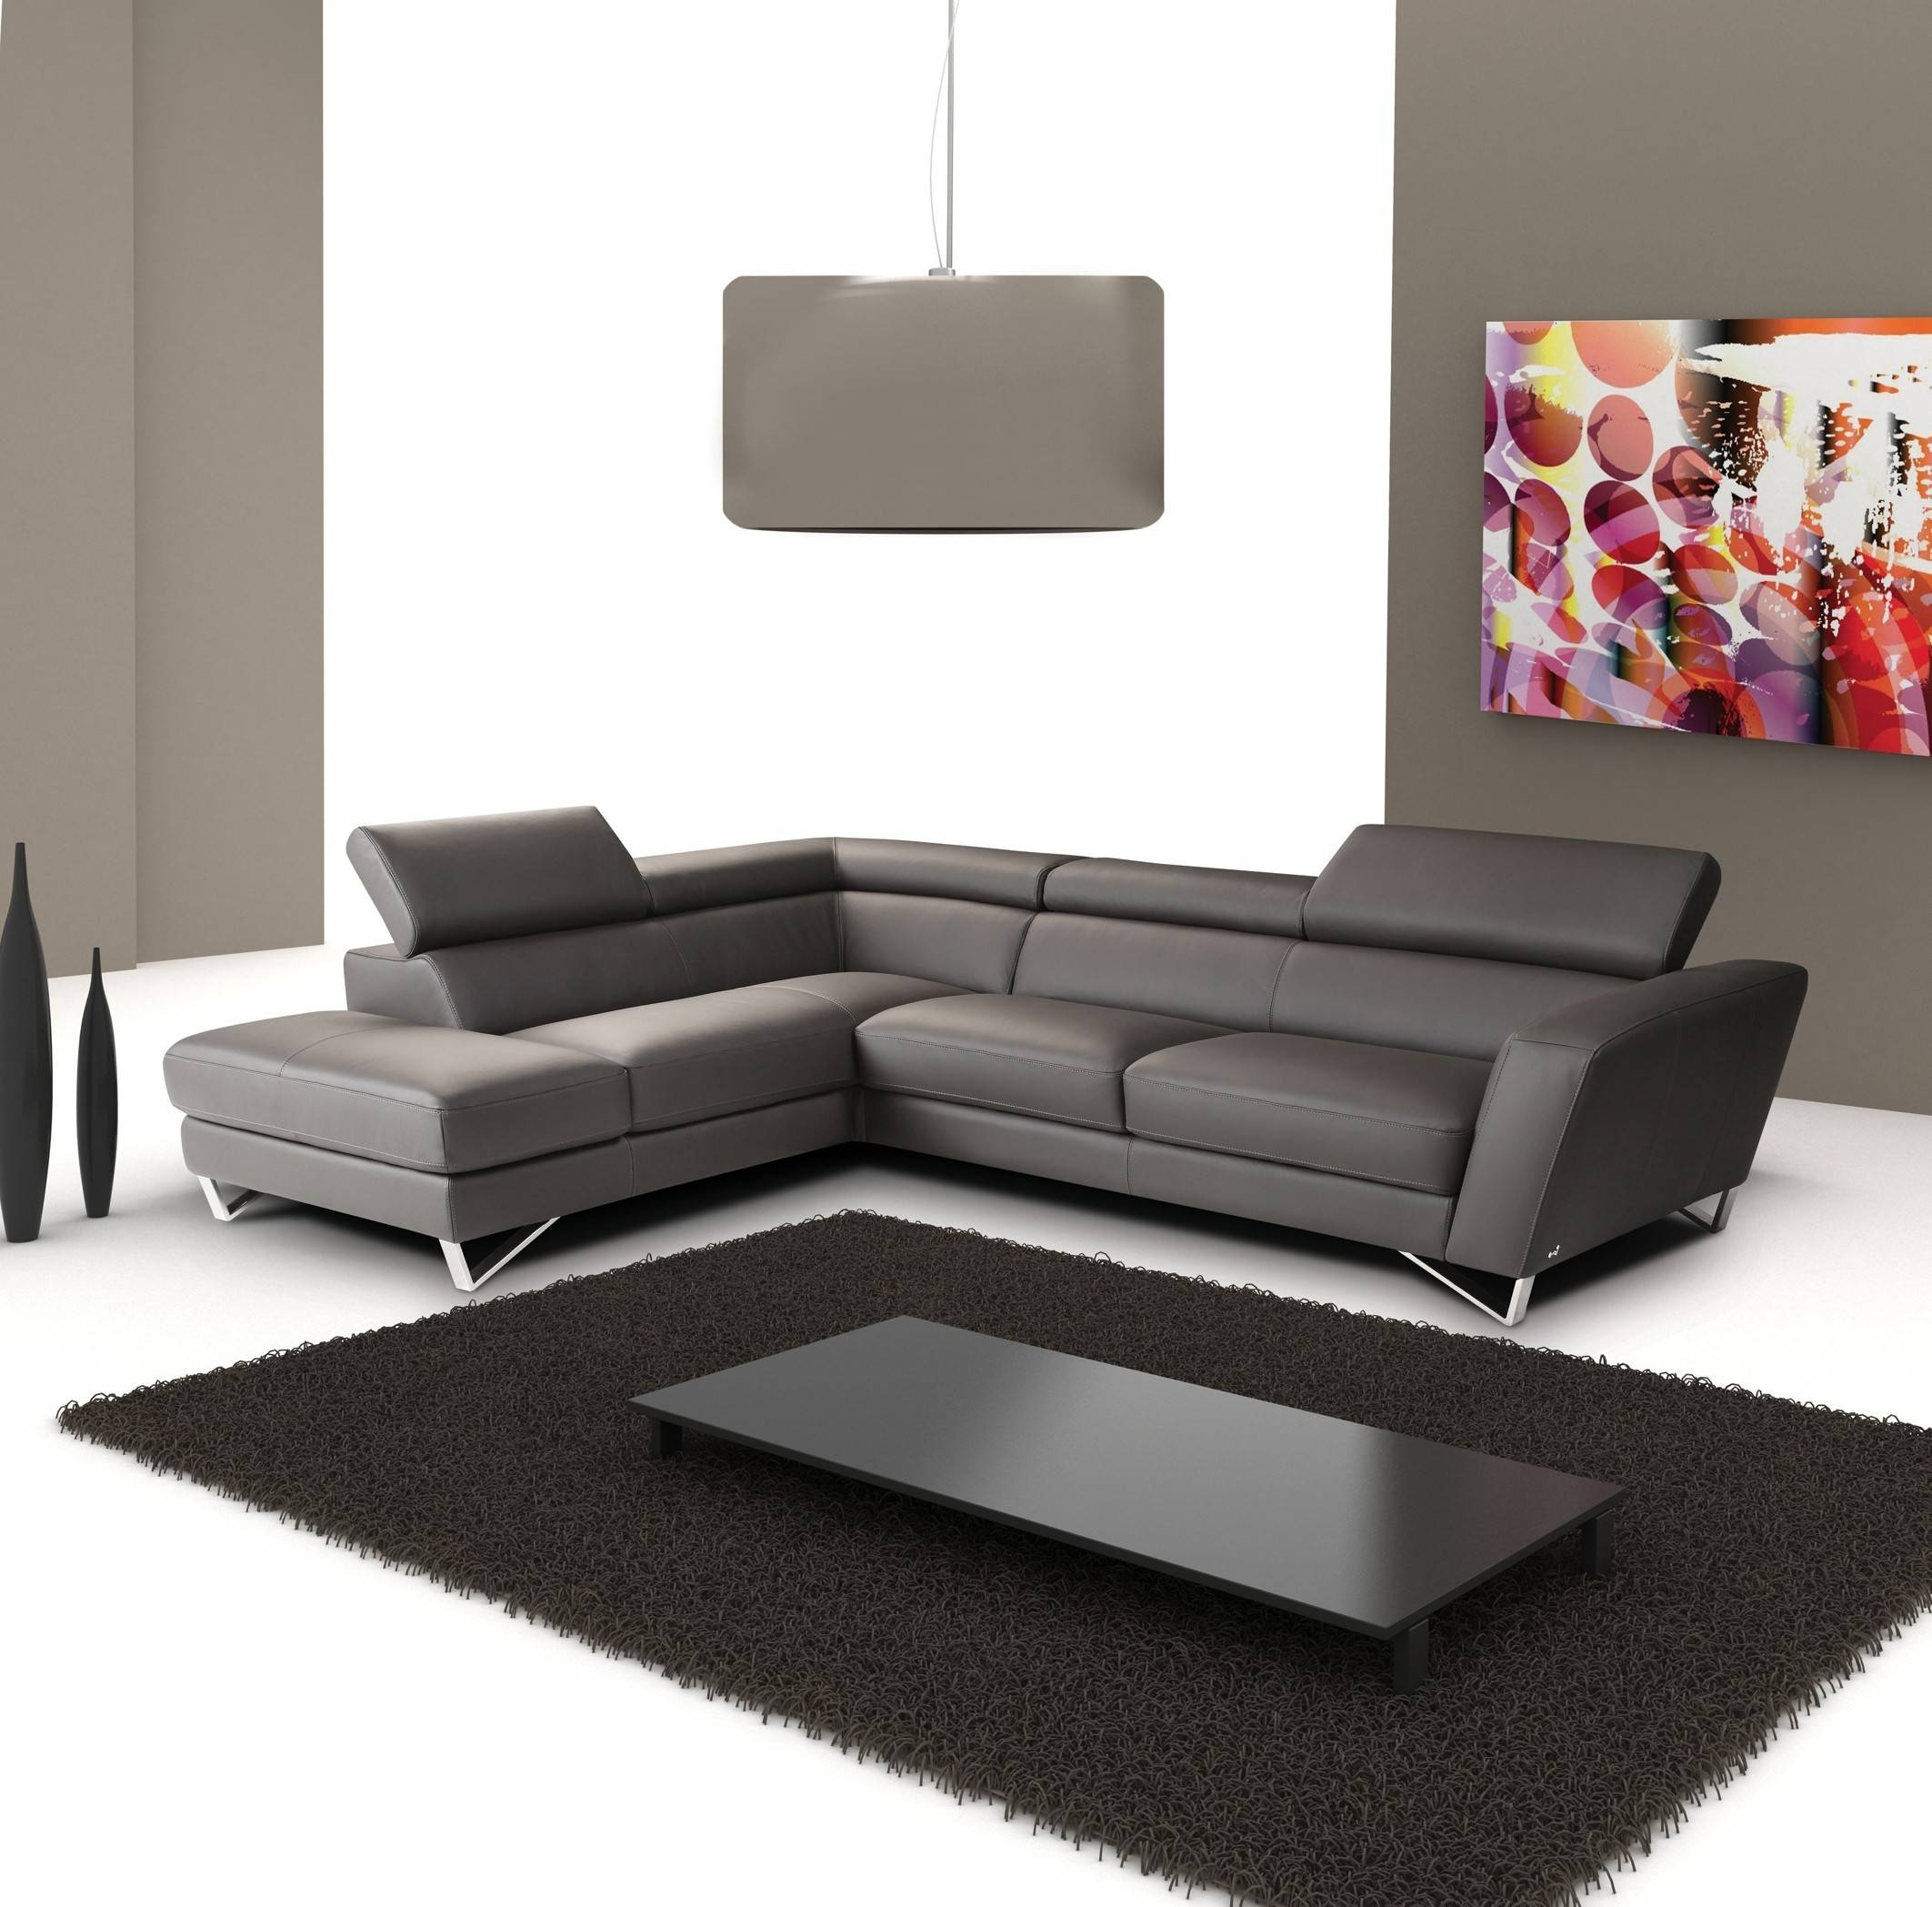 Contemporary Living Room Sets San Diego Inside Decorating with Sectional Sofa San Diego (Image 4 of 30)